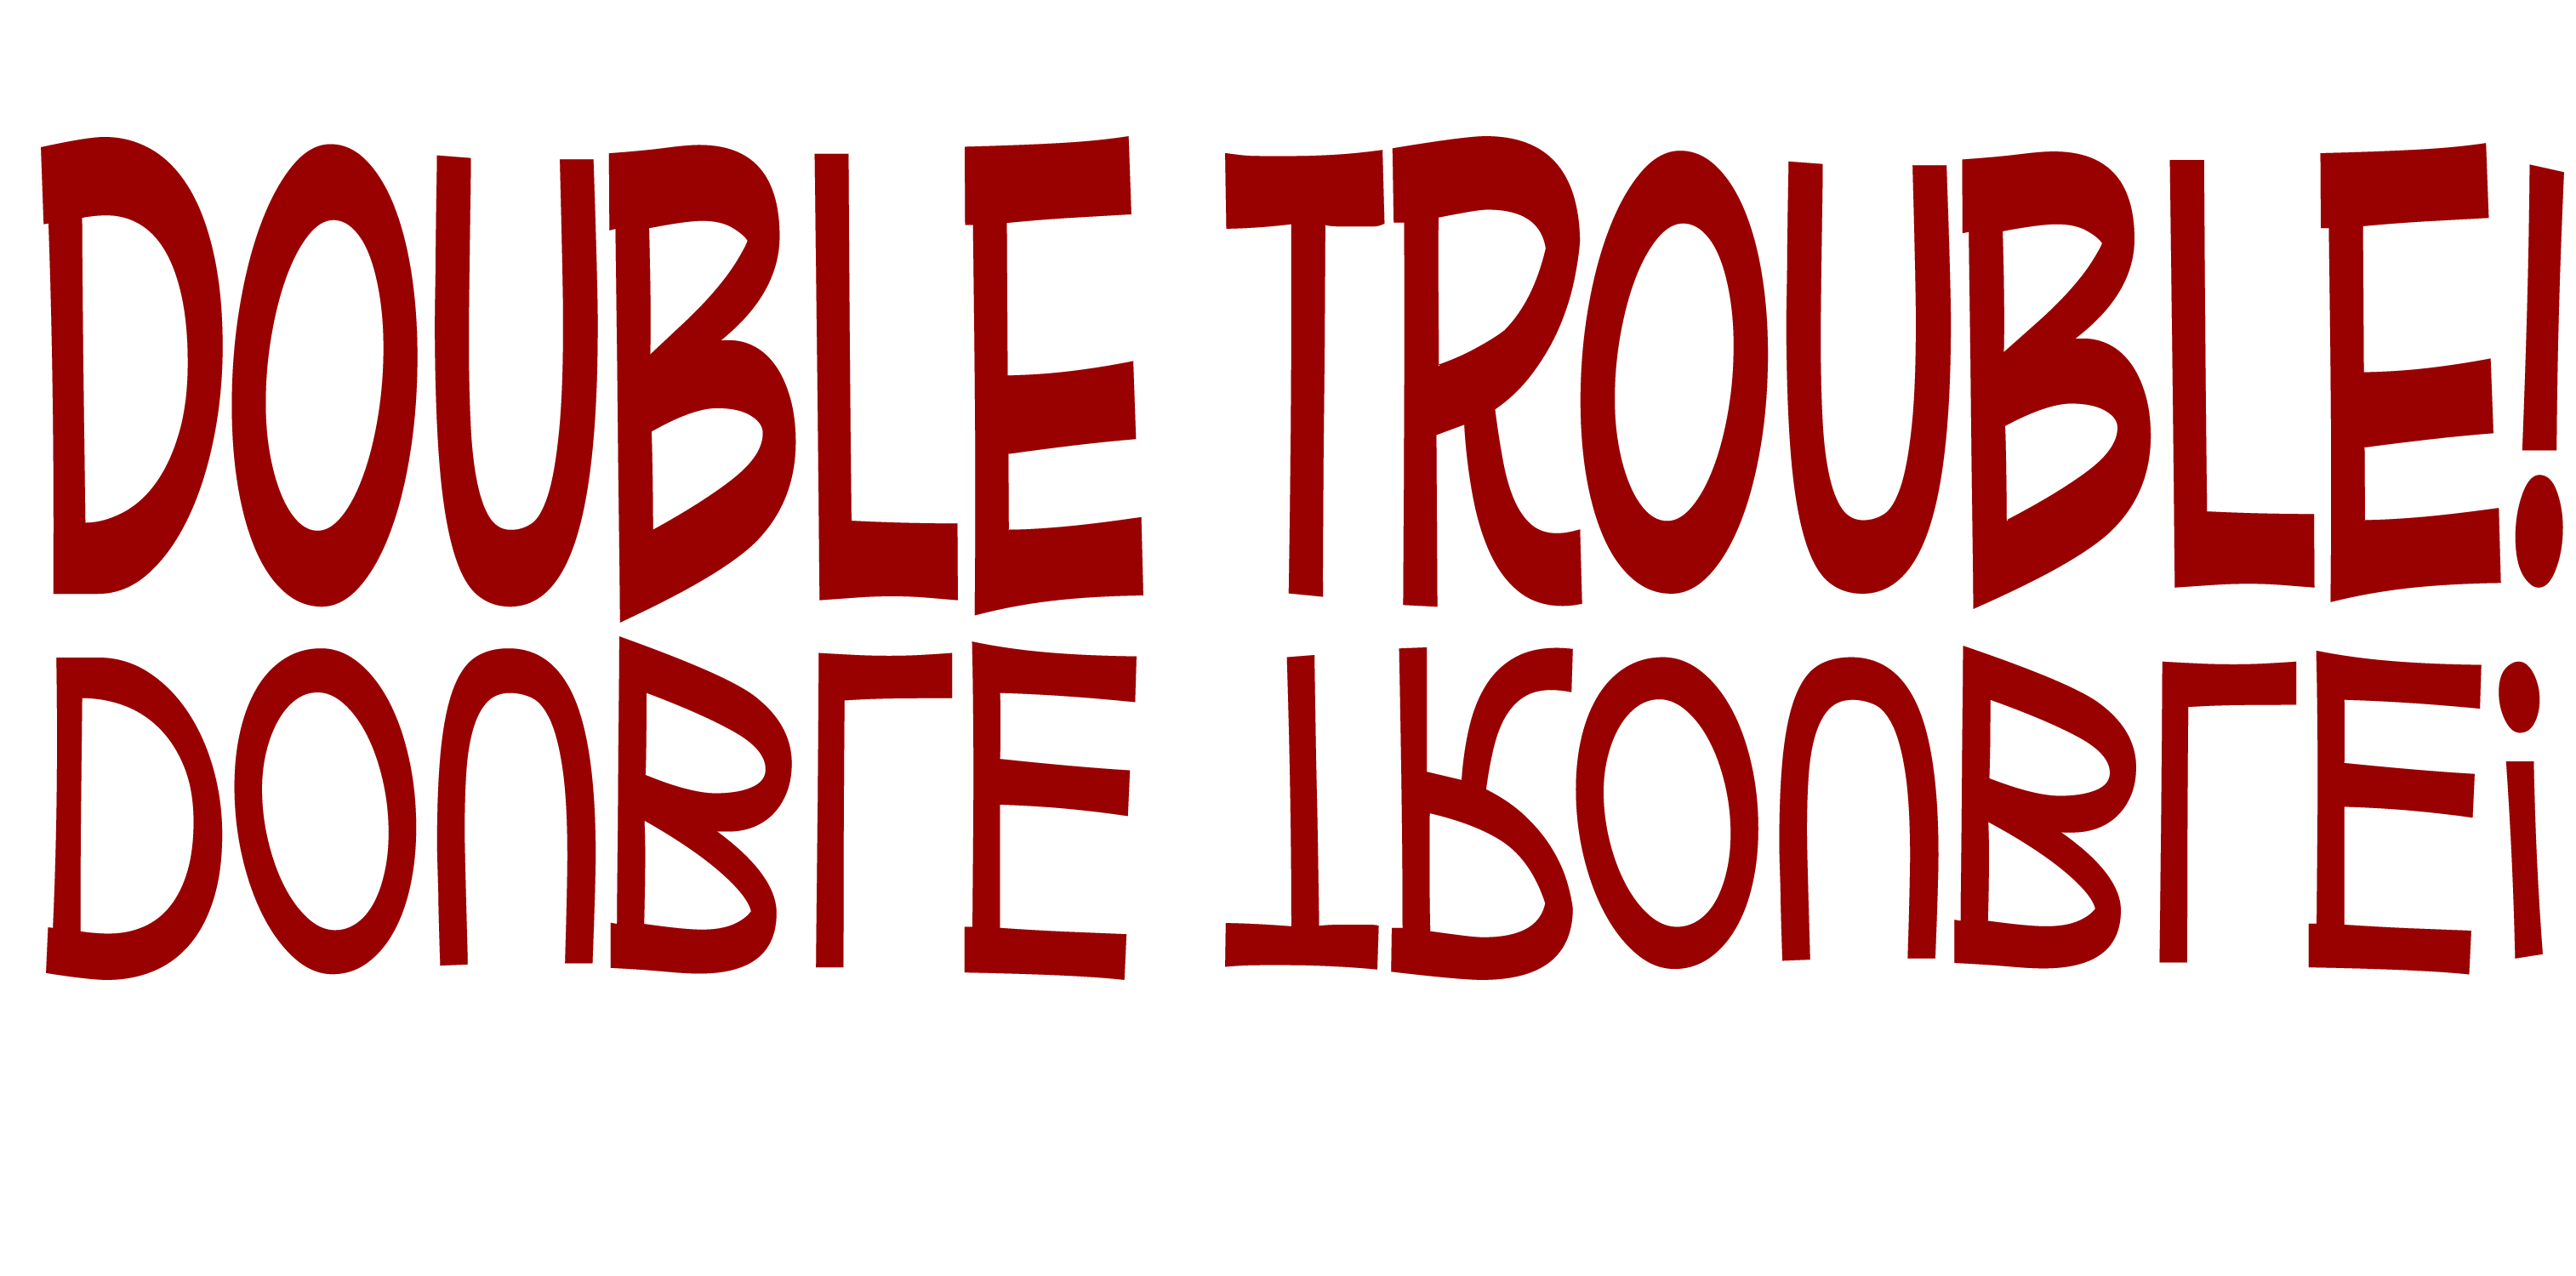 Double The Trouble Quotes: The Pack With 2 Of Everything